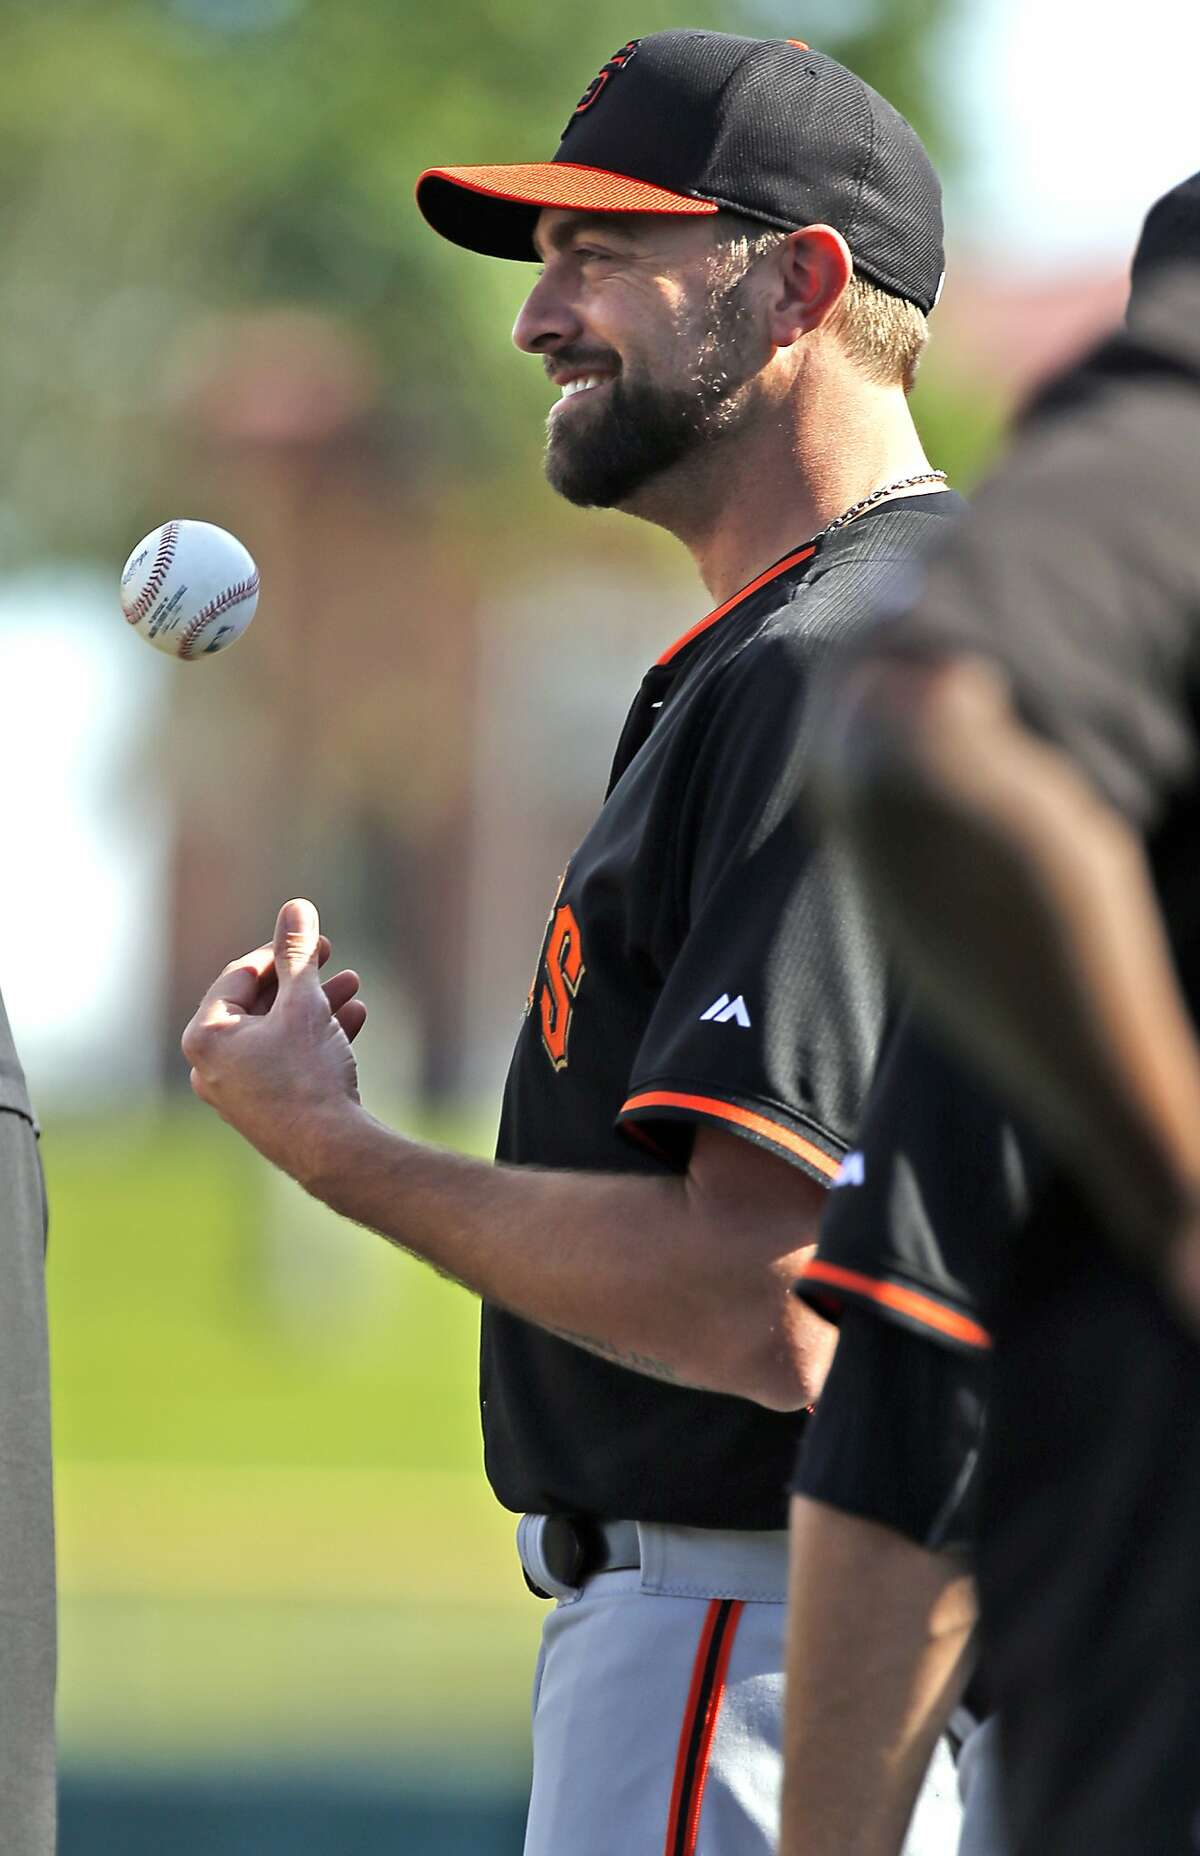 Jeremy Affeldt, who went on the 15-day disabled list Tuesday after another off-field injury, will be a free agent after this season. He is one of several decisions the Giants need to make with their pitching staff in the offseason.